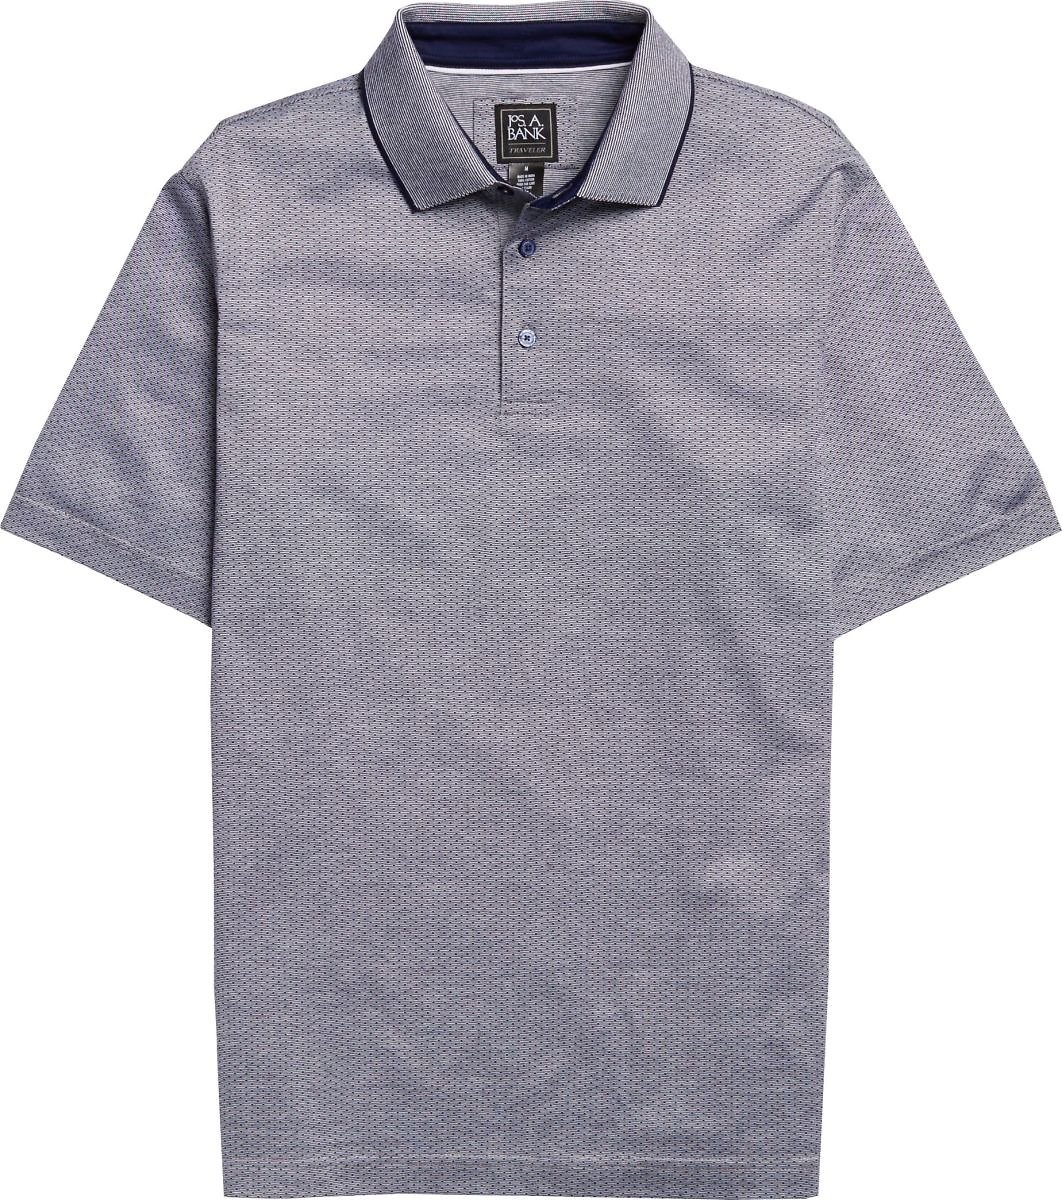 Traveler Collection Traditional Fit Jacquard Dot Short-Sleeve Pique Polo Shirt - Big & Tall CLEARANCE #62JR